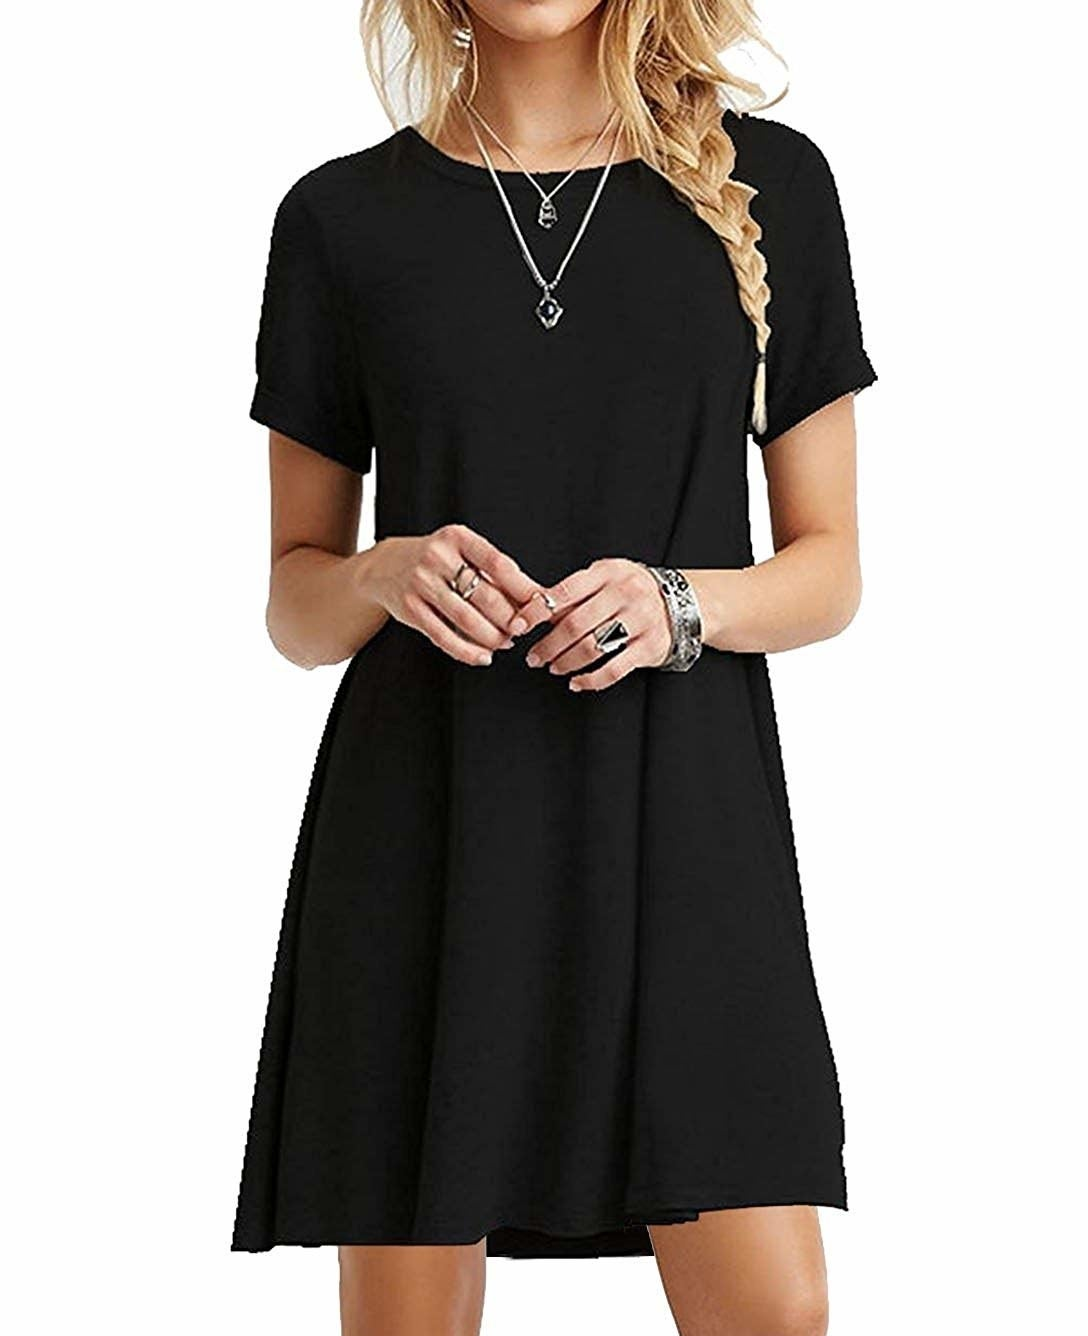 "Promising review: ""This simple T-shirt dress is a must have. The sizing is true, it drapes well, and it's comfortable. It needs to be washed in cold water and hung dry, and the fabric requires almost no ironing after hanging. It can be dressed up with jewelry and simple heels, or worn with flip-flops. I'll definitely be ordering a few more in different colors."" —MAPGet it from Amazon for $12.99+ (available in 20 styles, and sizes XS–XL)."